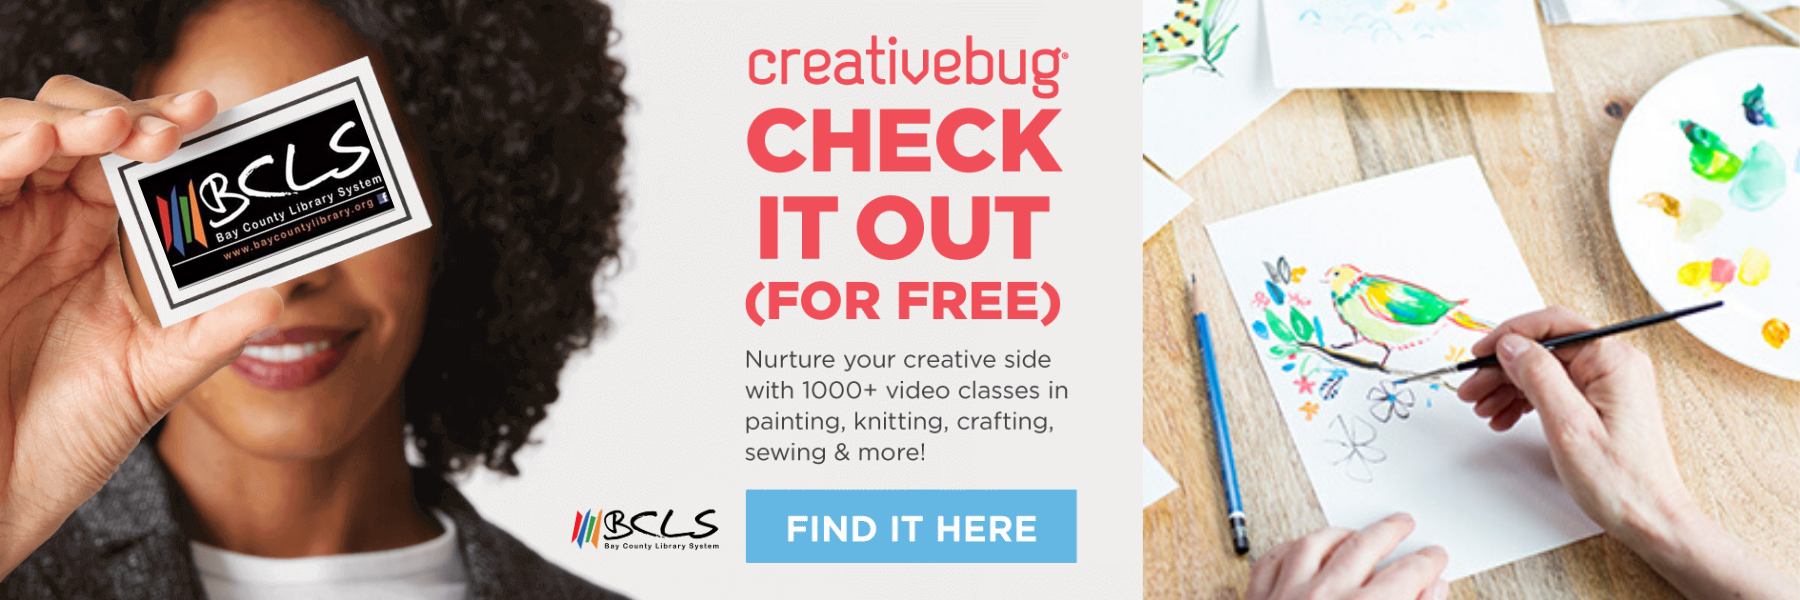 Creativebug Web Slide